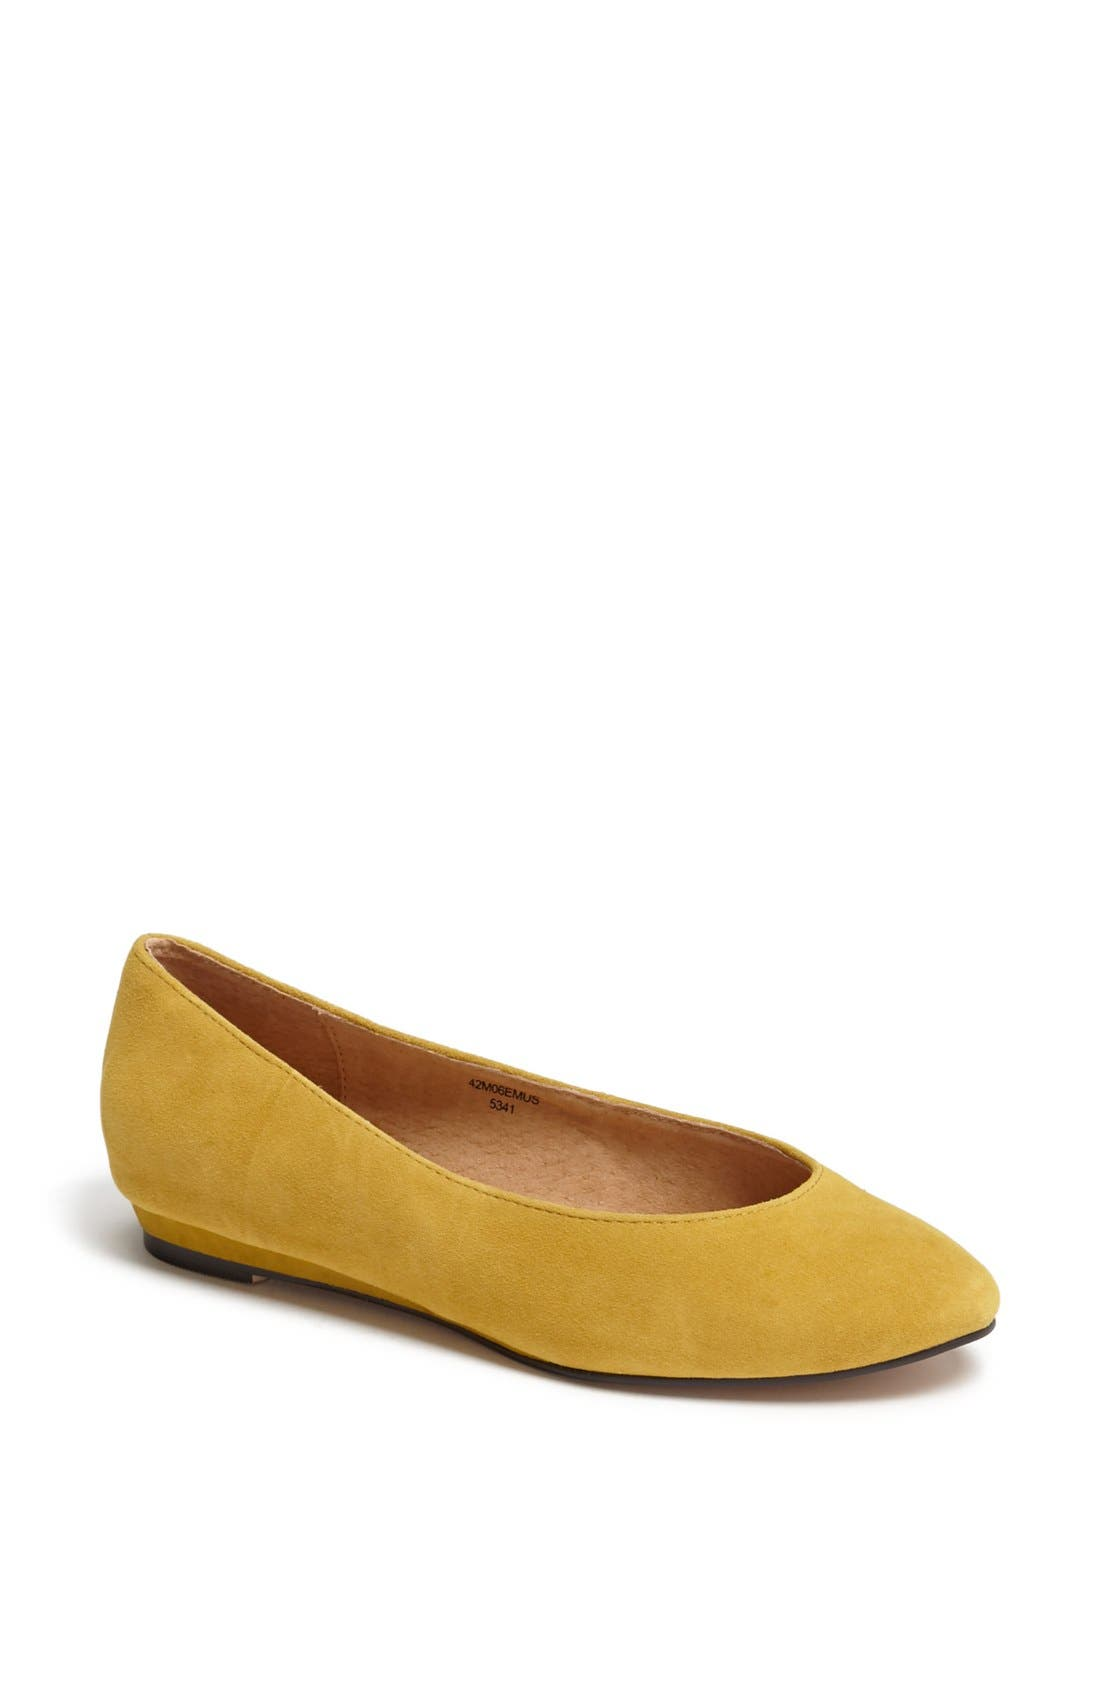 Main Image - Topshop 'Mello Mini Wedge' Court Shoe